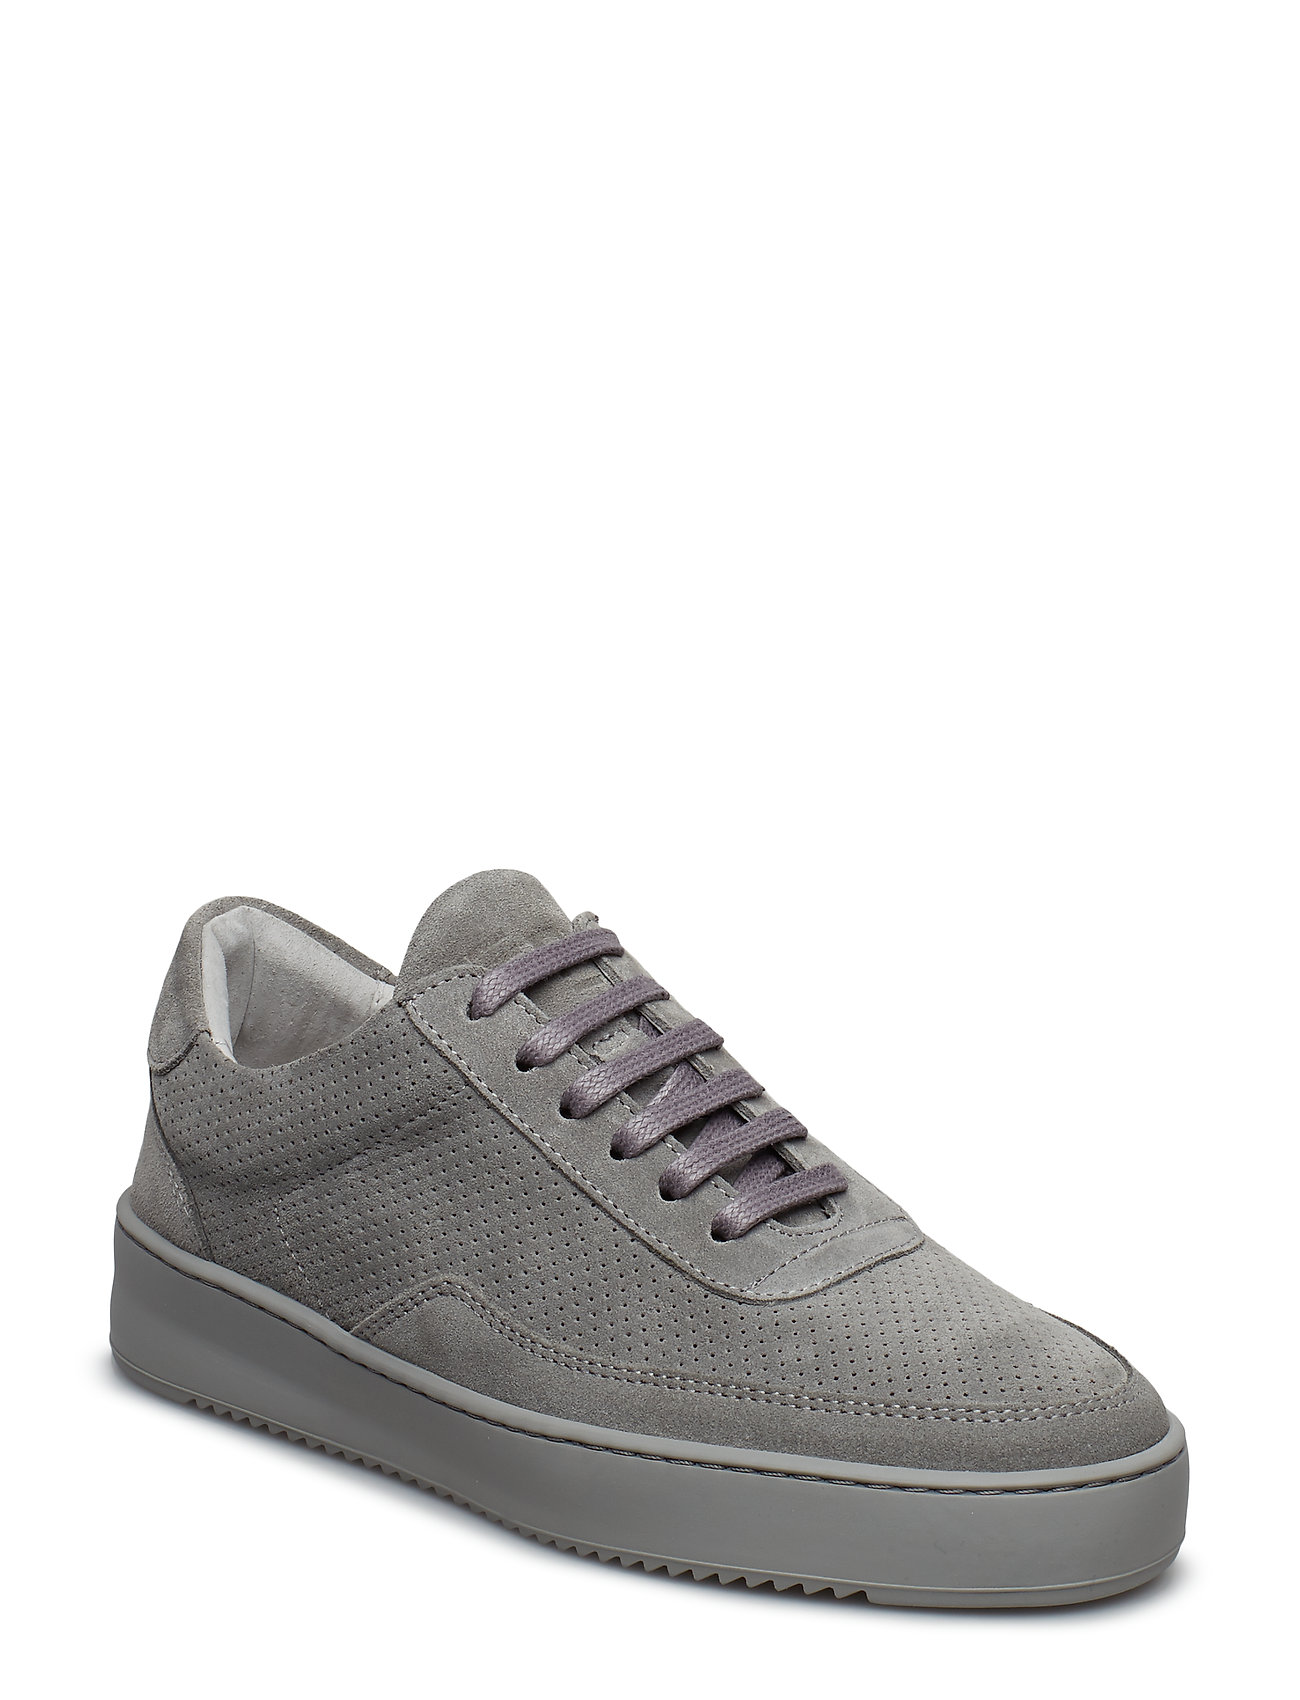 71efd4796c5b Low Mondo Ripple Suede Perforated Low-top Sneakers Grå FILLING PIECES